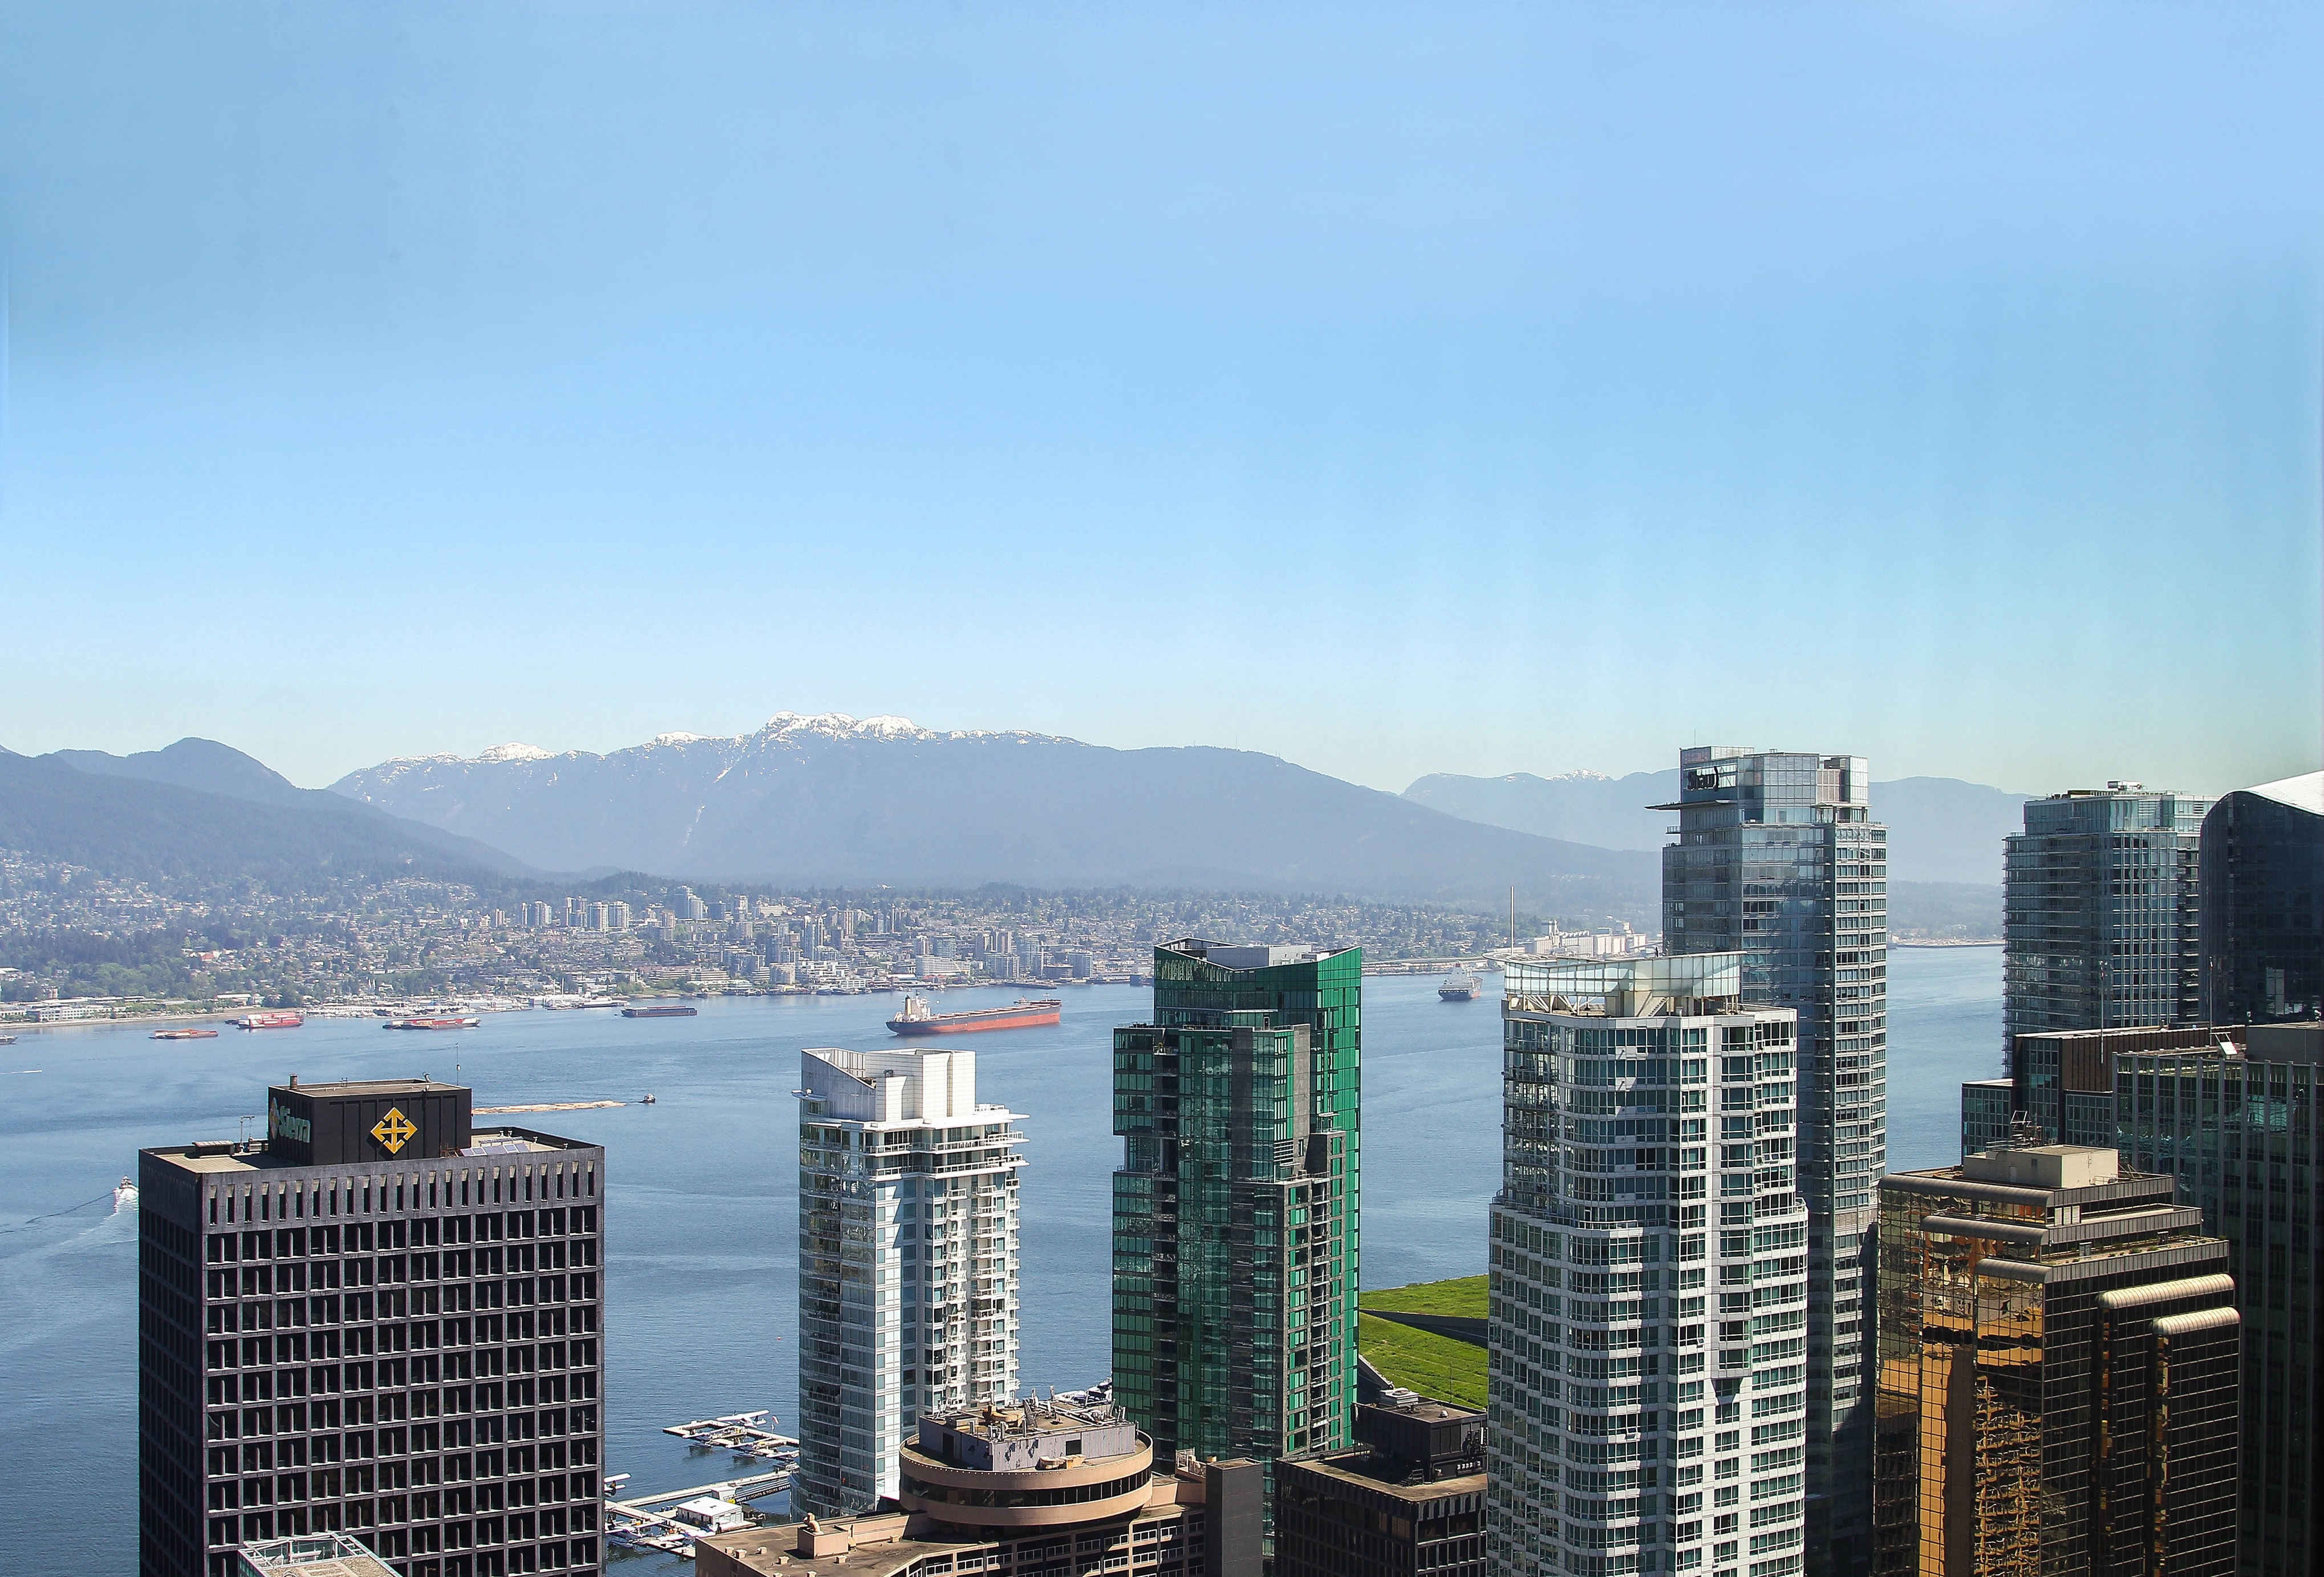 UNFURNISHED DELUXE TWO BEDROOM PROPERTY IN THE LUXURIOUS TRUMP RESIDENCES VANCOUVER